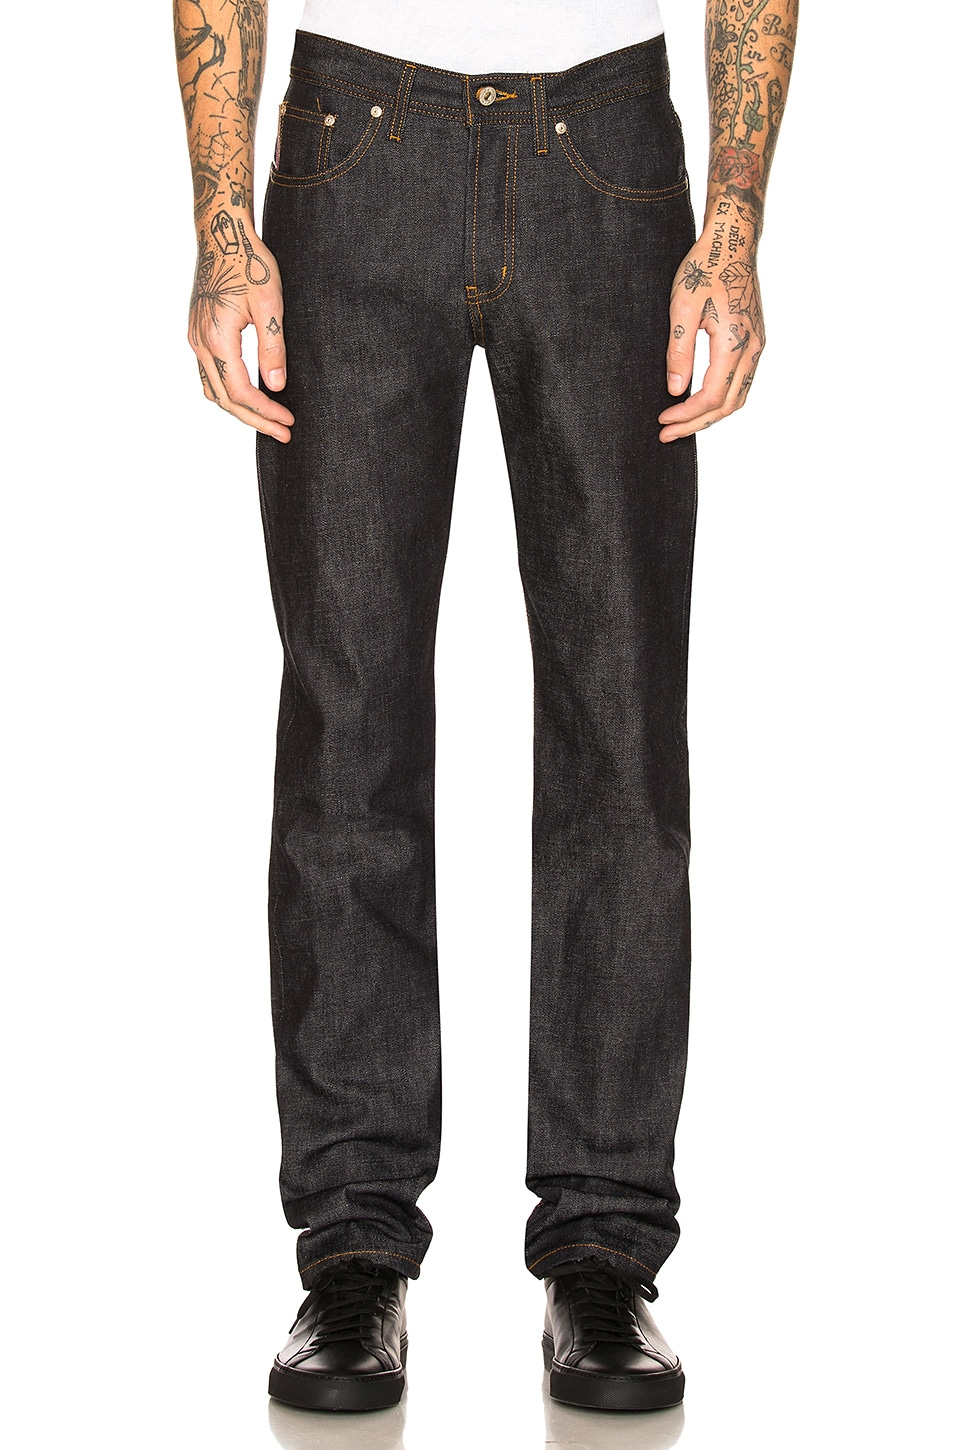 NAKED AND FAMOUS WEIRD GUY 10 YEAR ANNIVERSARY SELVEDGE